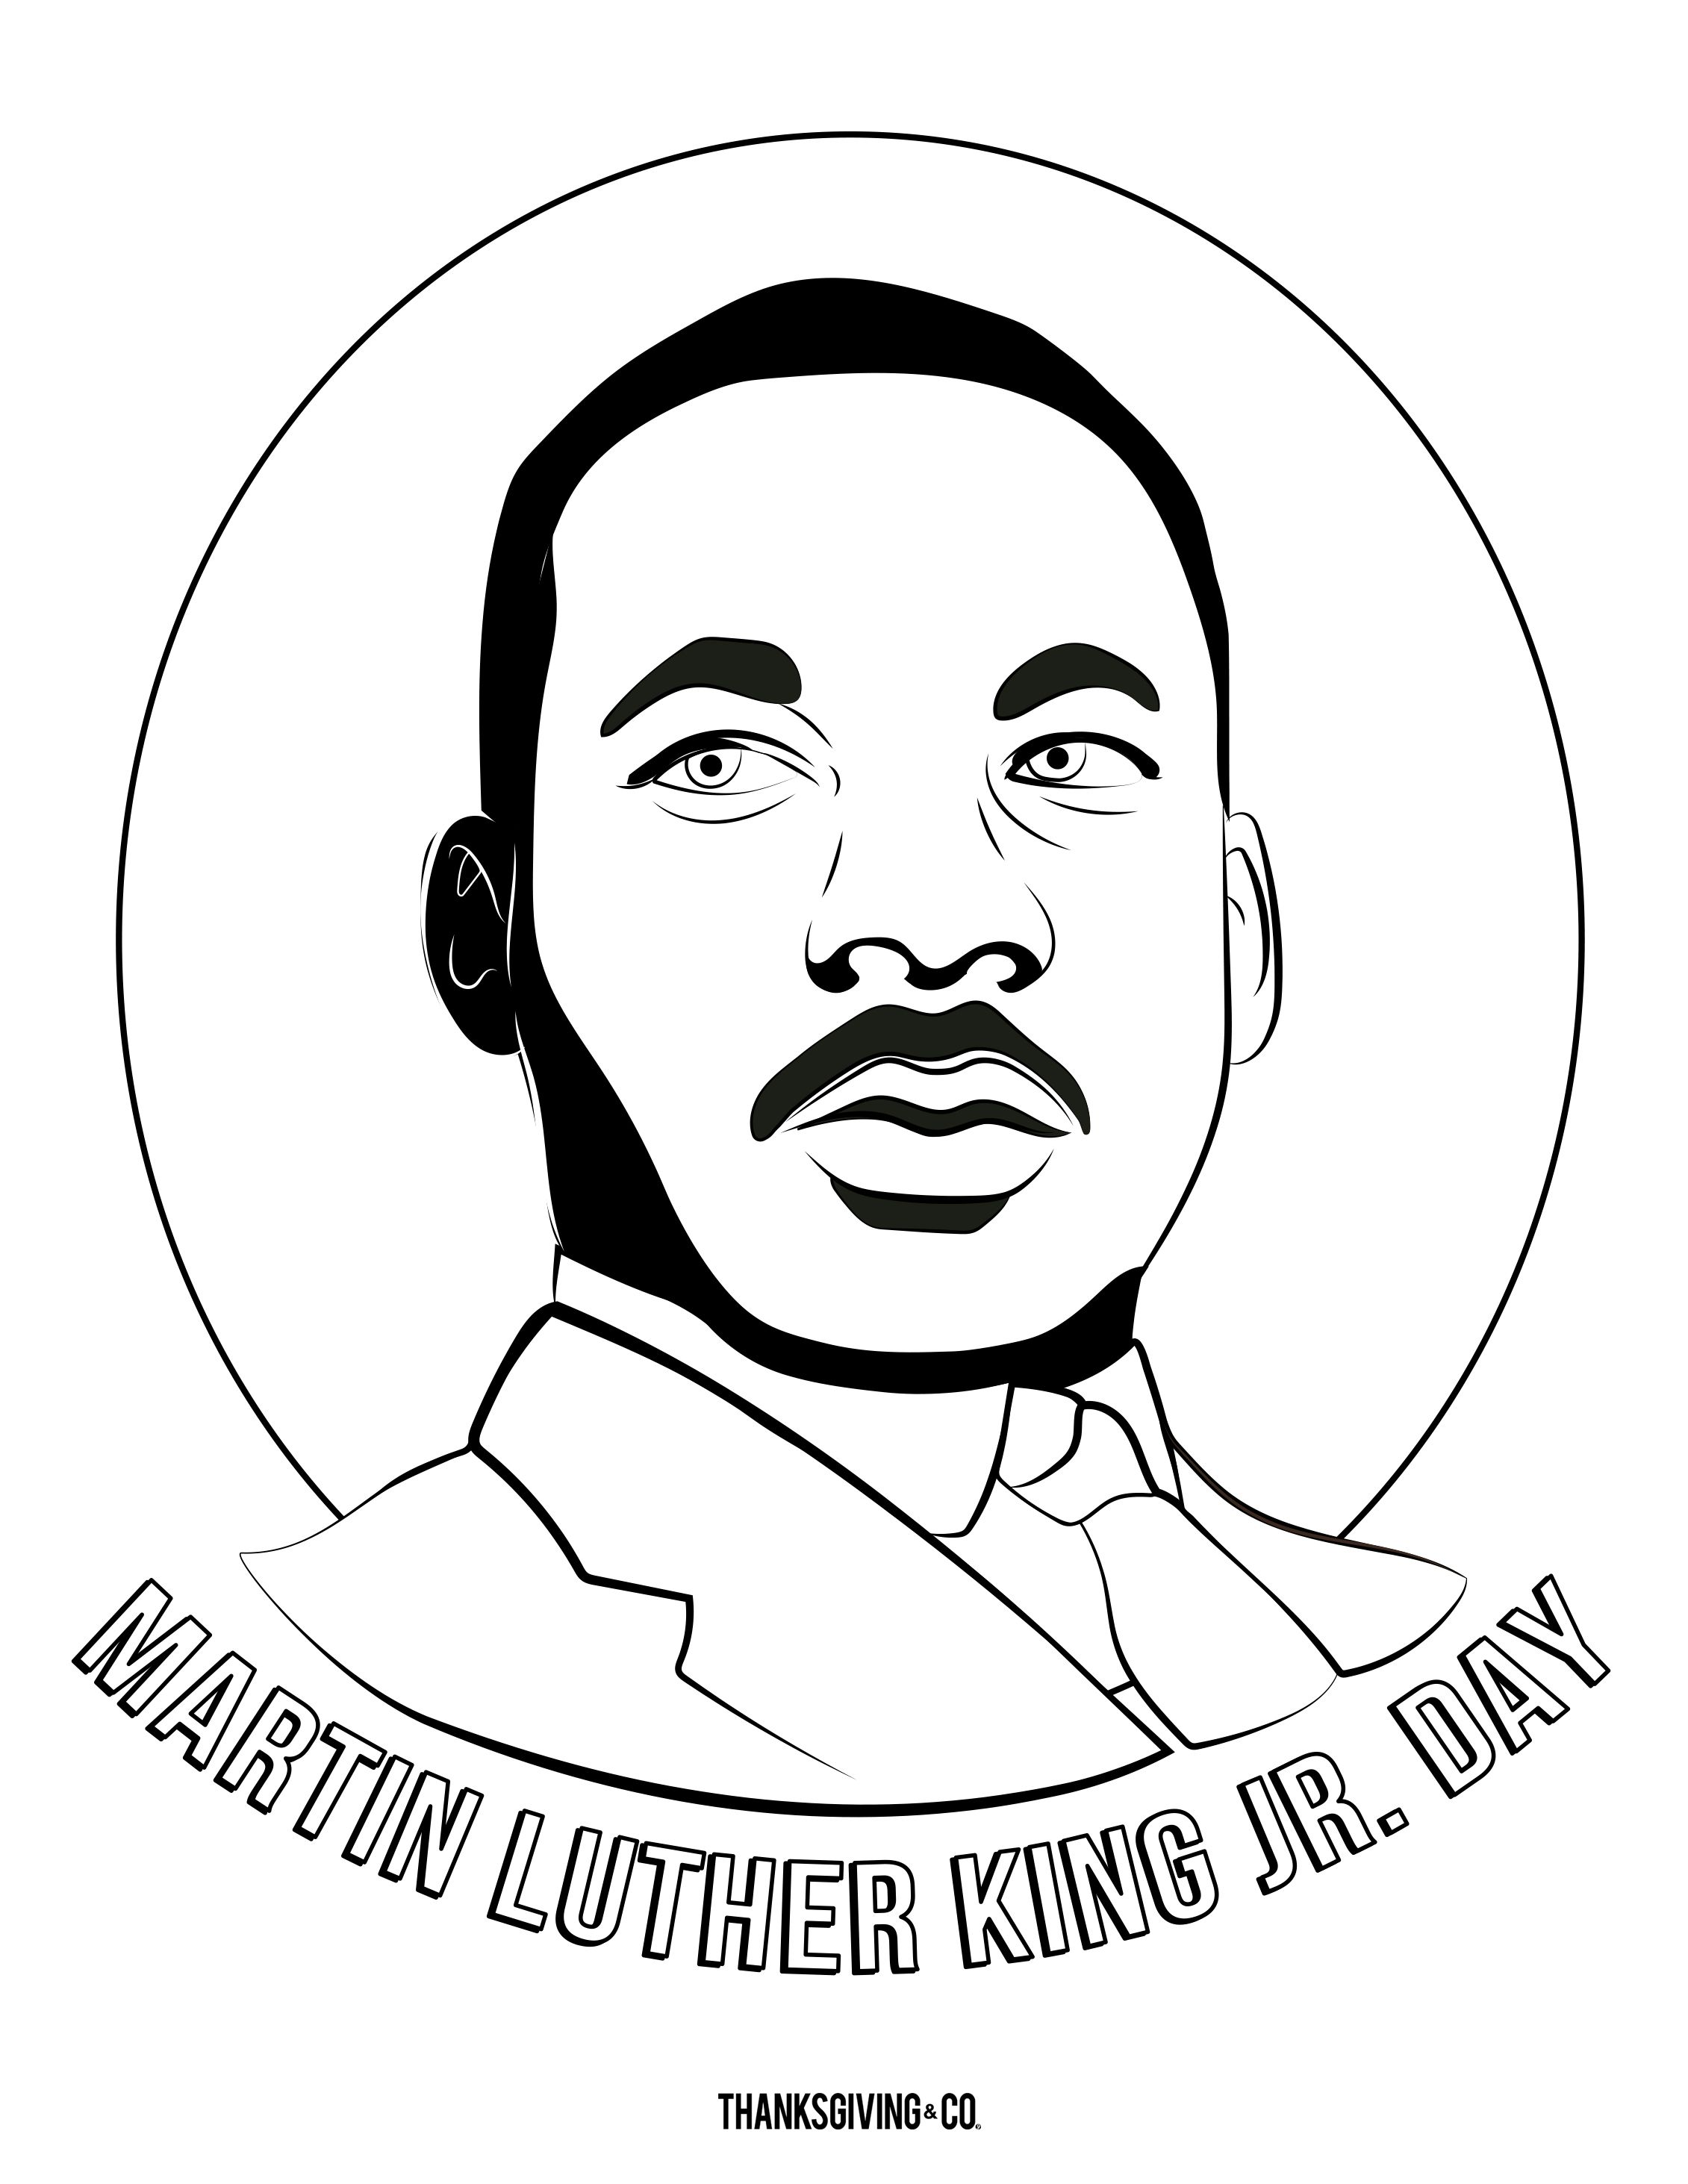 Share These Fun Martin Luther King Jr Coloring Pages With Your